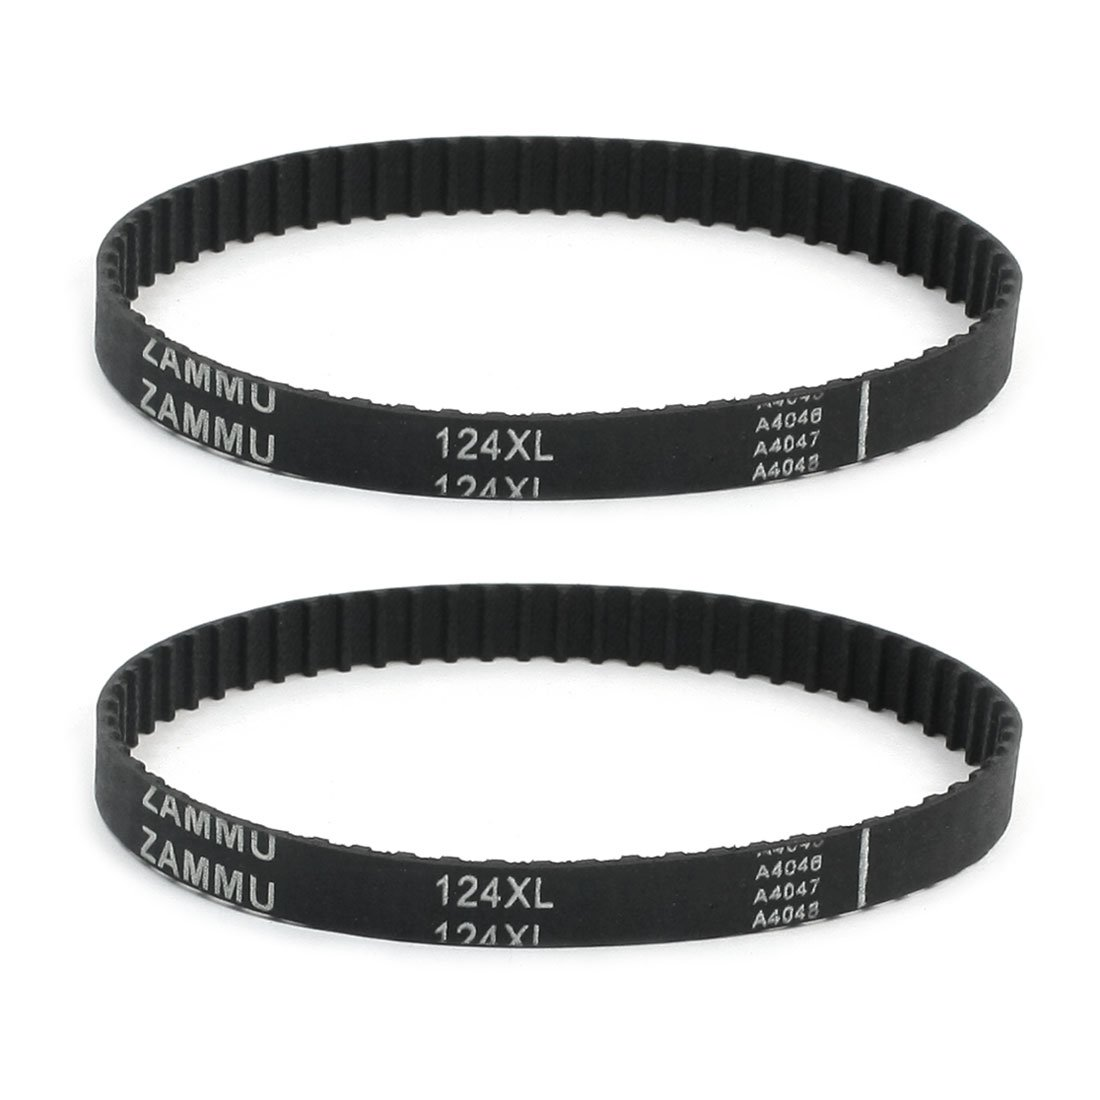 uxcell 2Pcs 124XL 5.08mm Pitch 62-Tooth Single Side Rubber Cogged Timing Belt a14052600ux0683